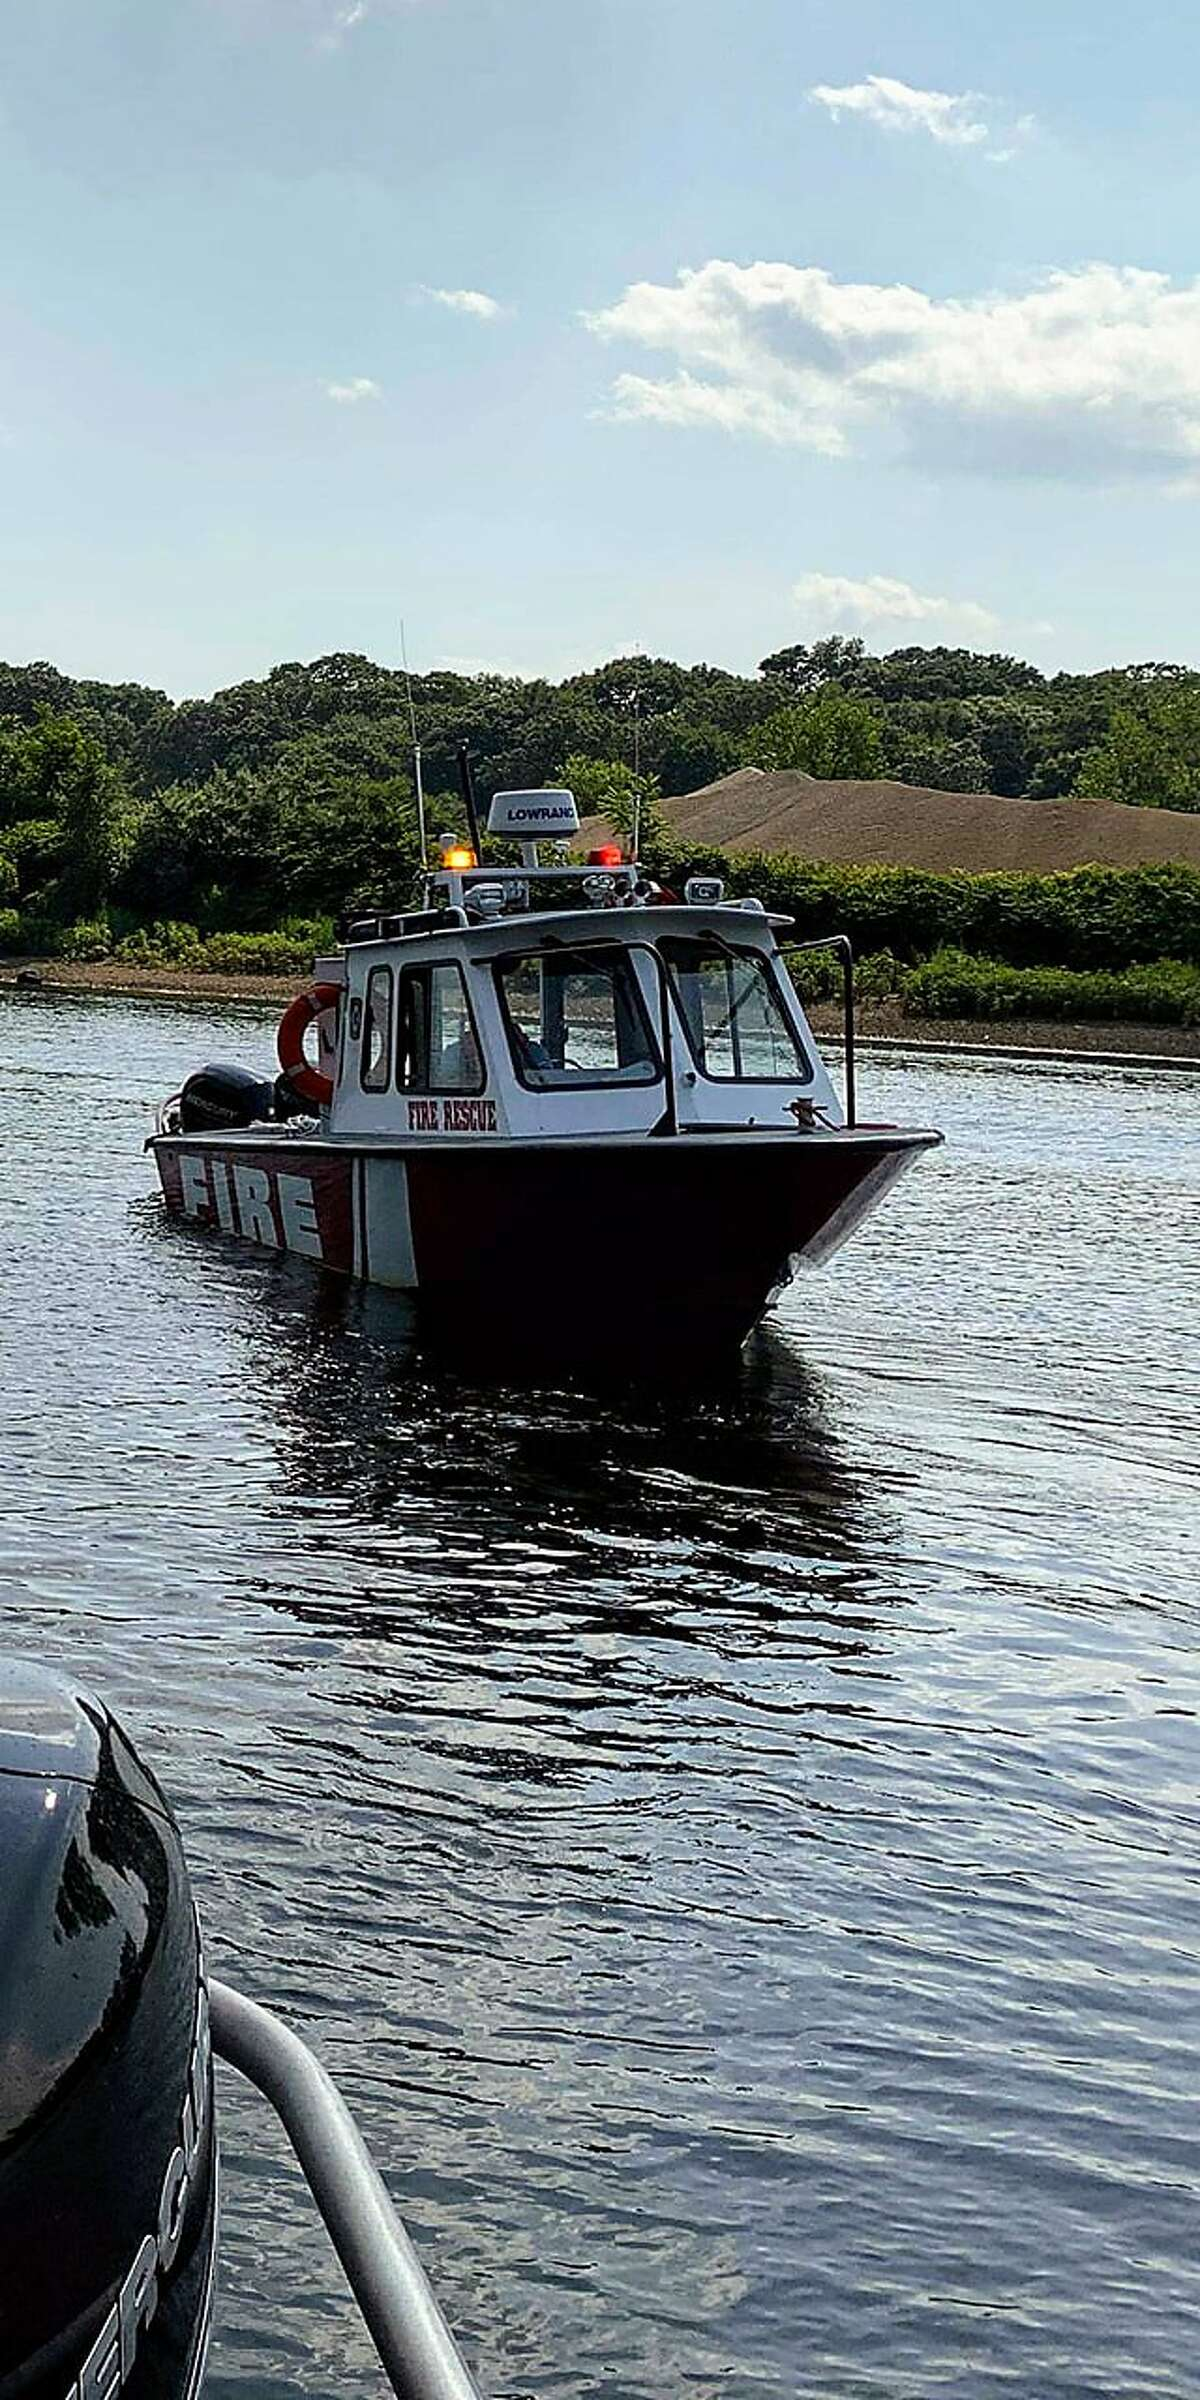 Shelton Fire Department's marine unit responded to a report of a boat taking on water on the lower Housatonic River on Friday, Aug. 2.